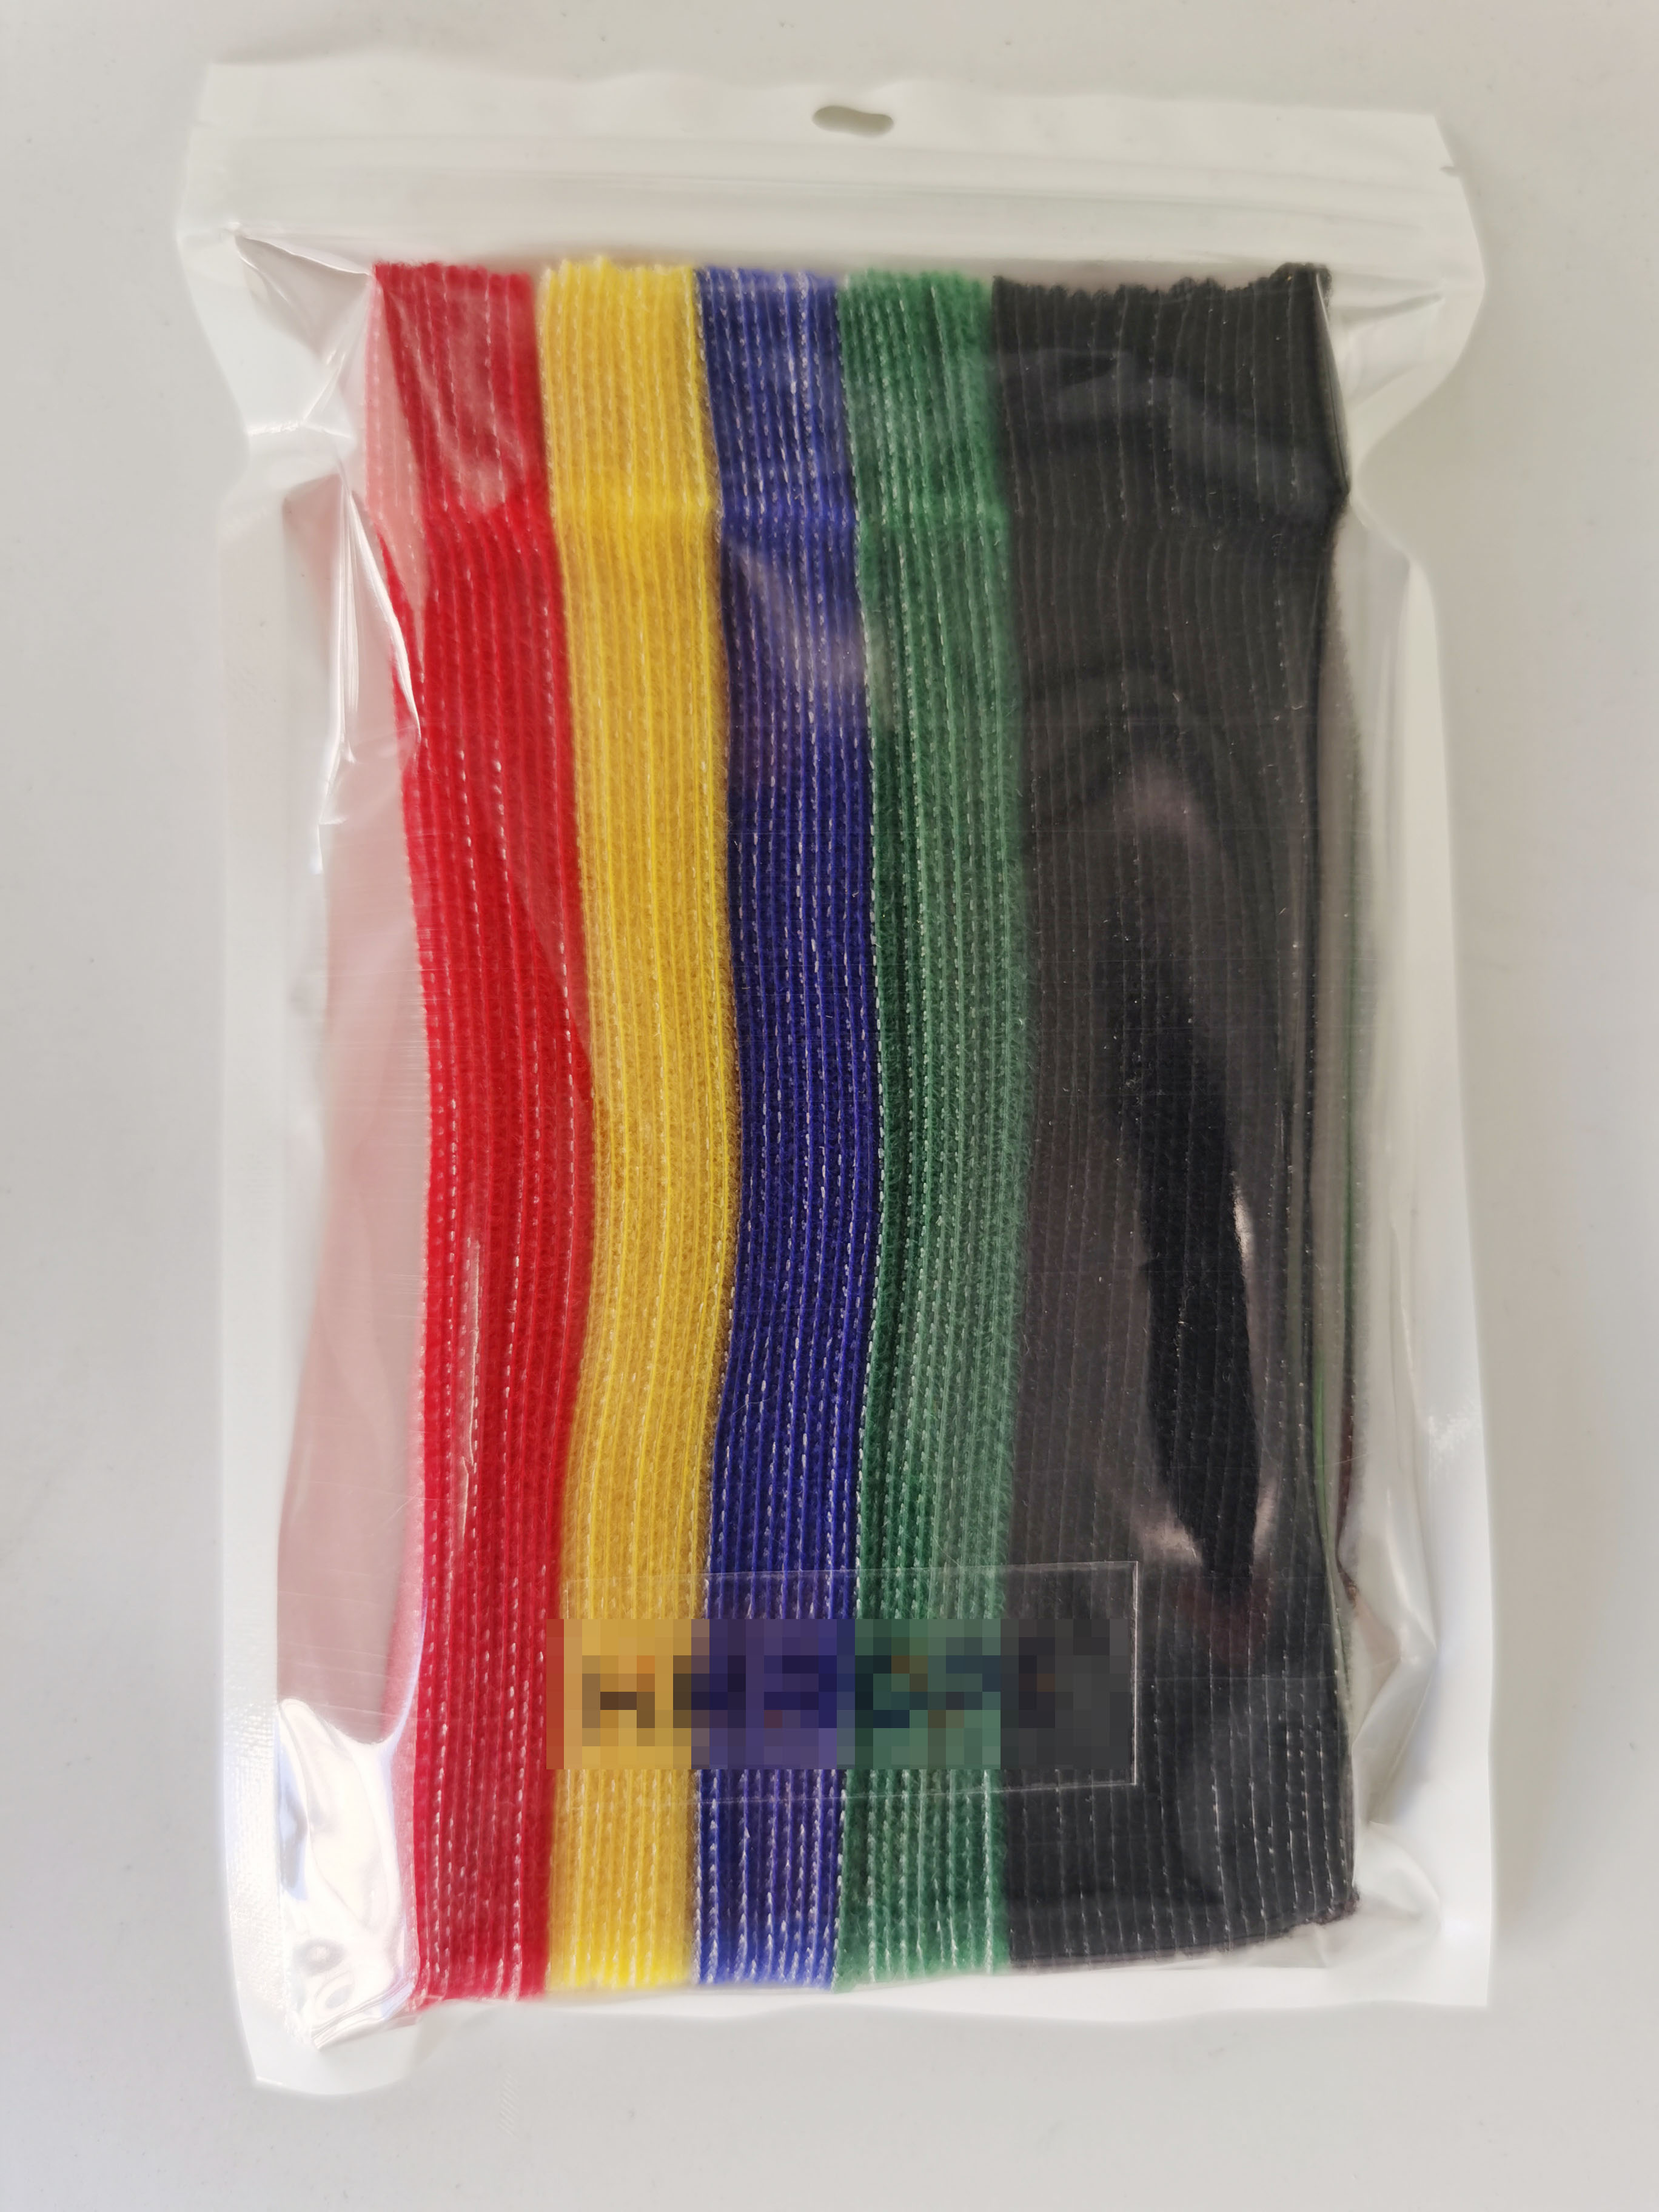 Stock Wholesale Back to Back Hook and Loop Strap Fastener Colorful Reusable Cable Ties Amazon hot